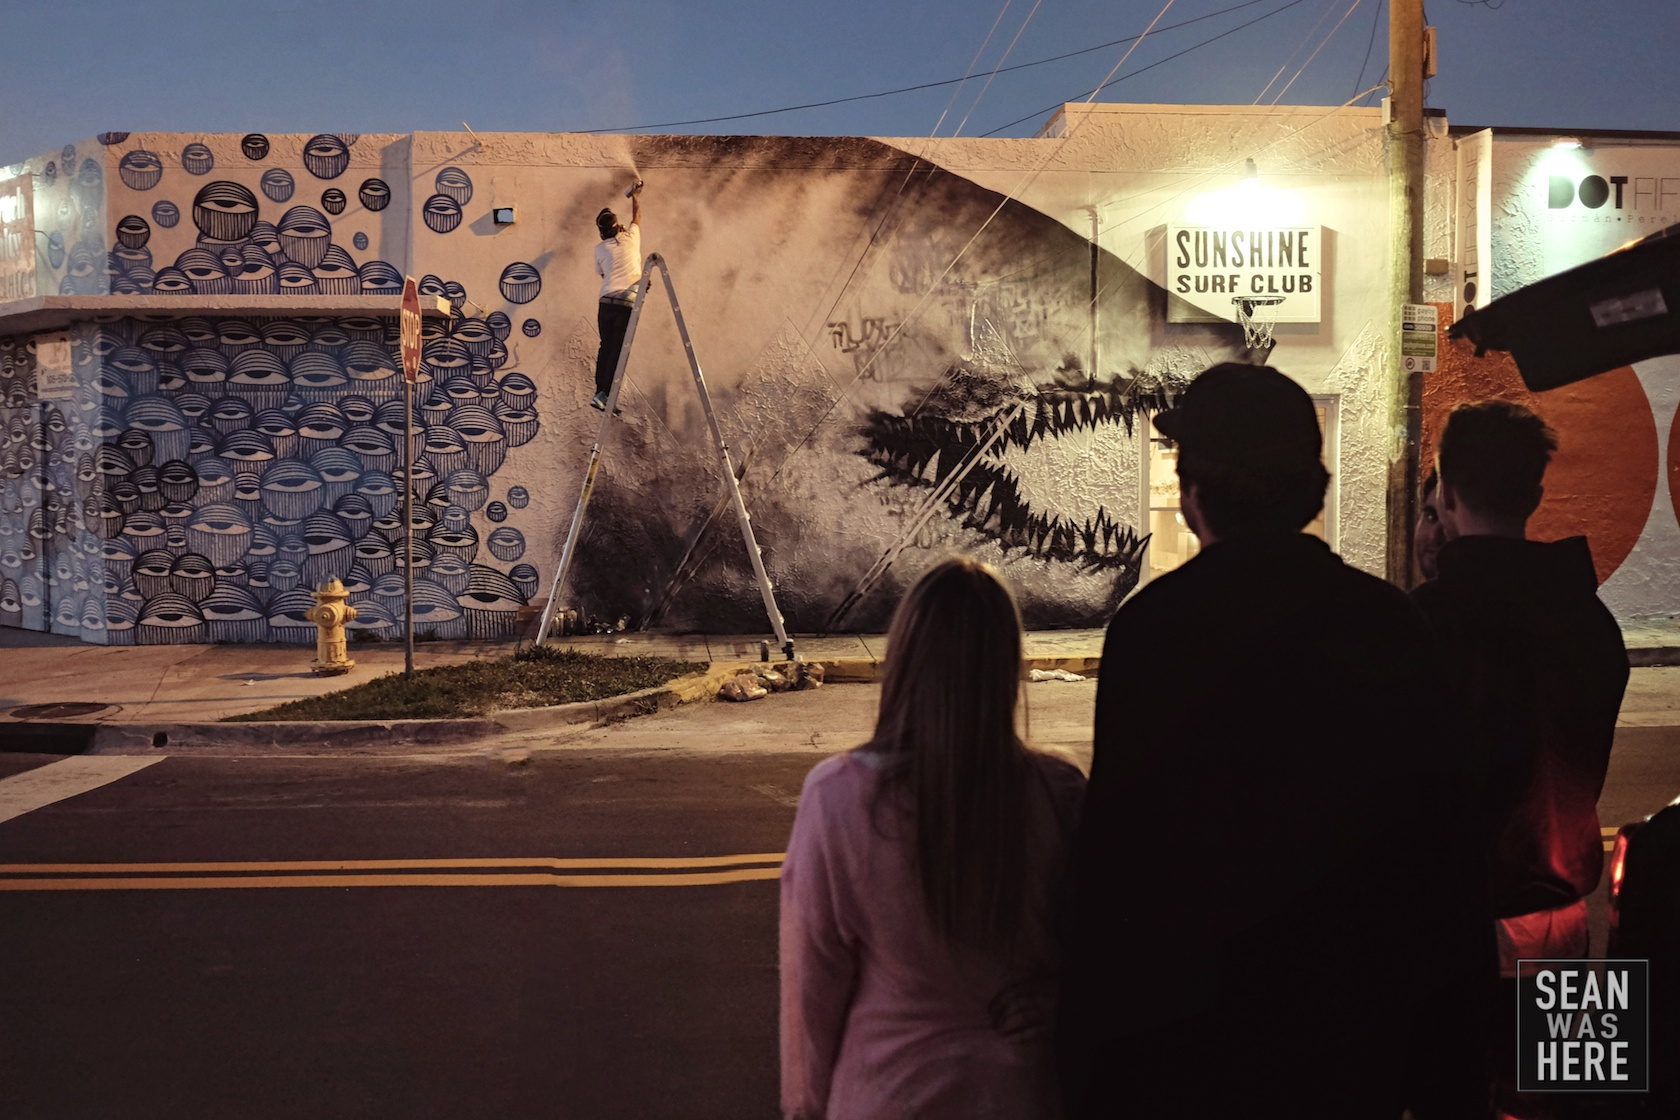 Shark Toof with a mural in progress for Sunshine Surf Club. Wynwood Miami